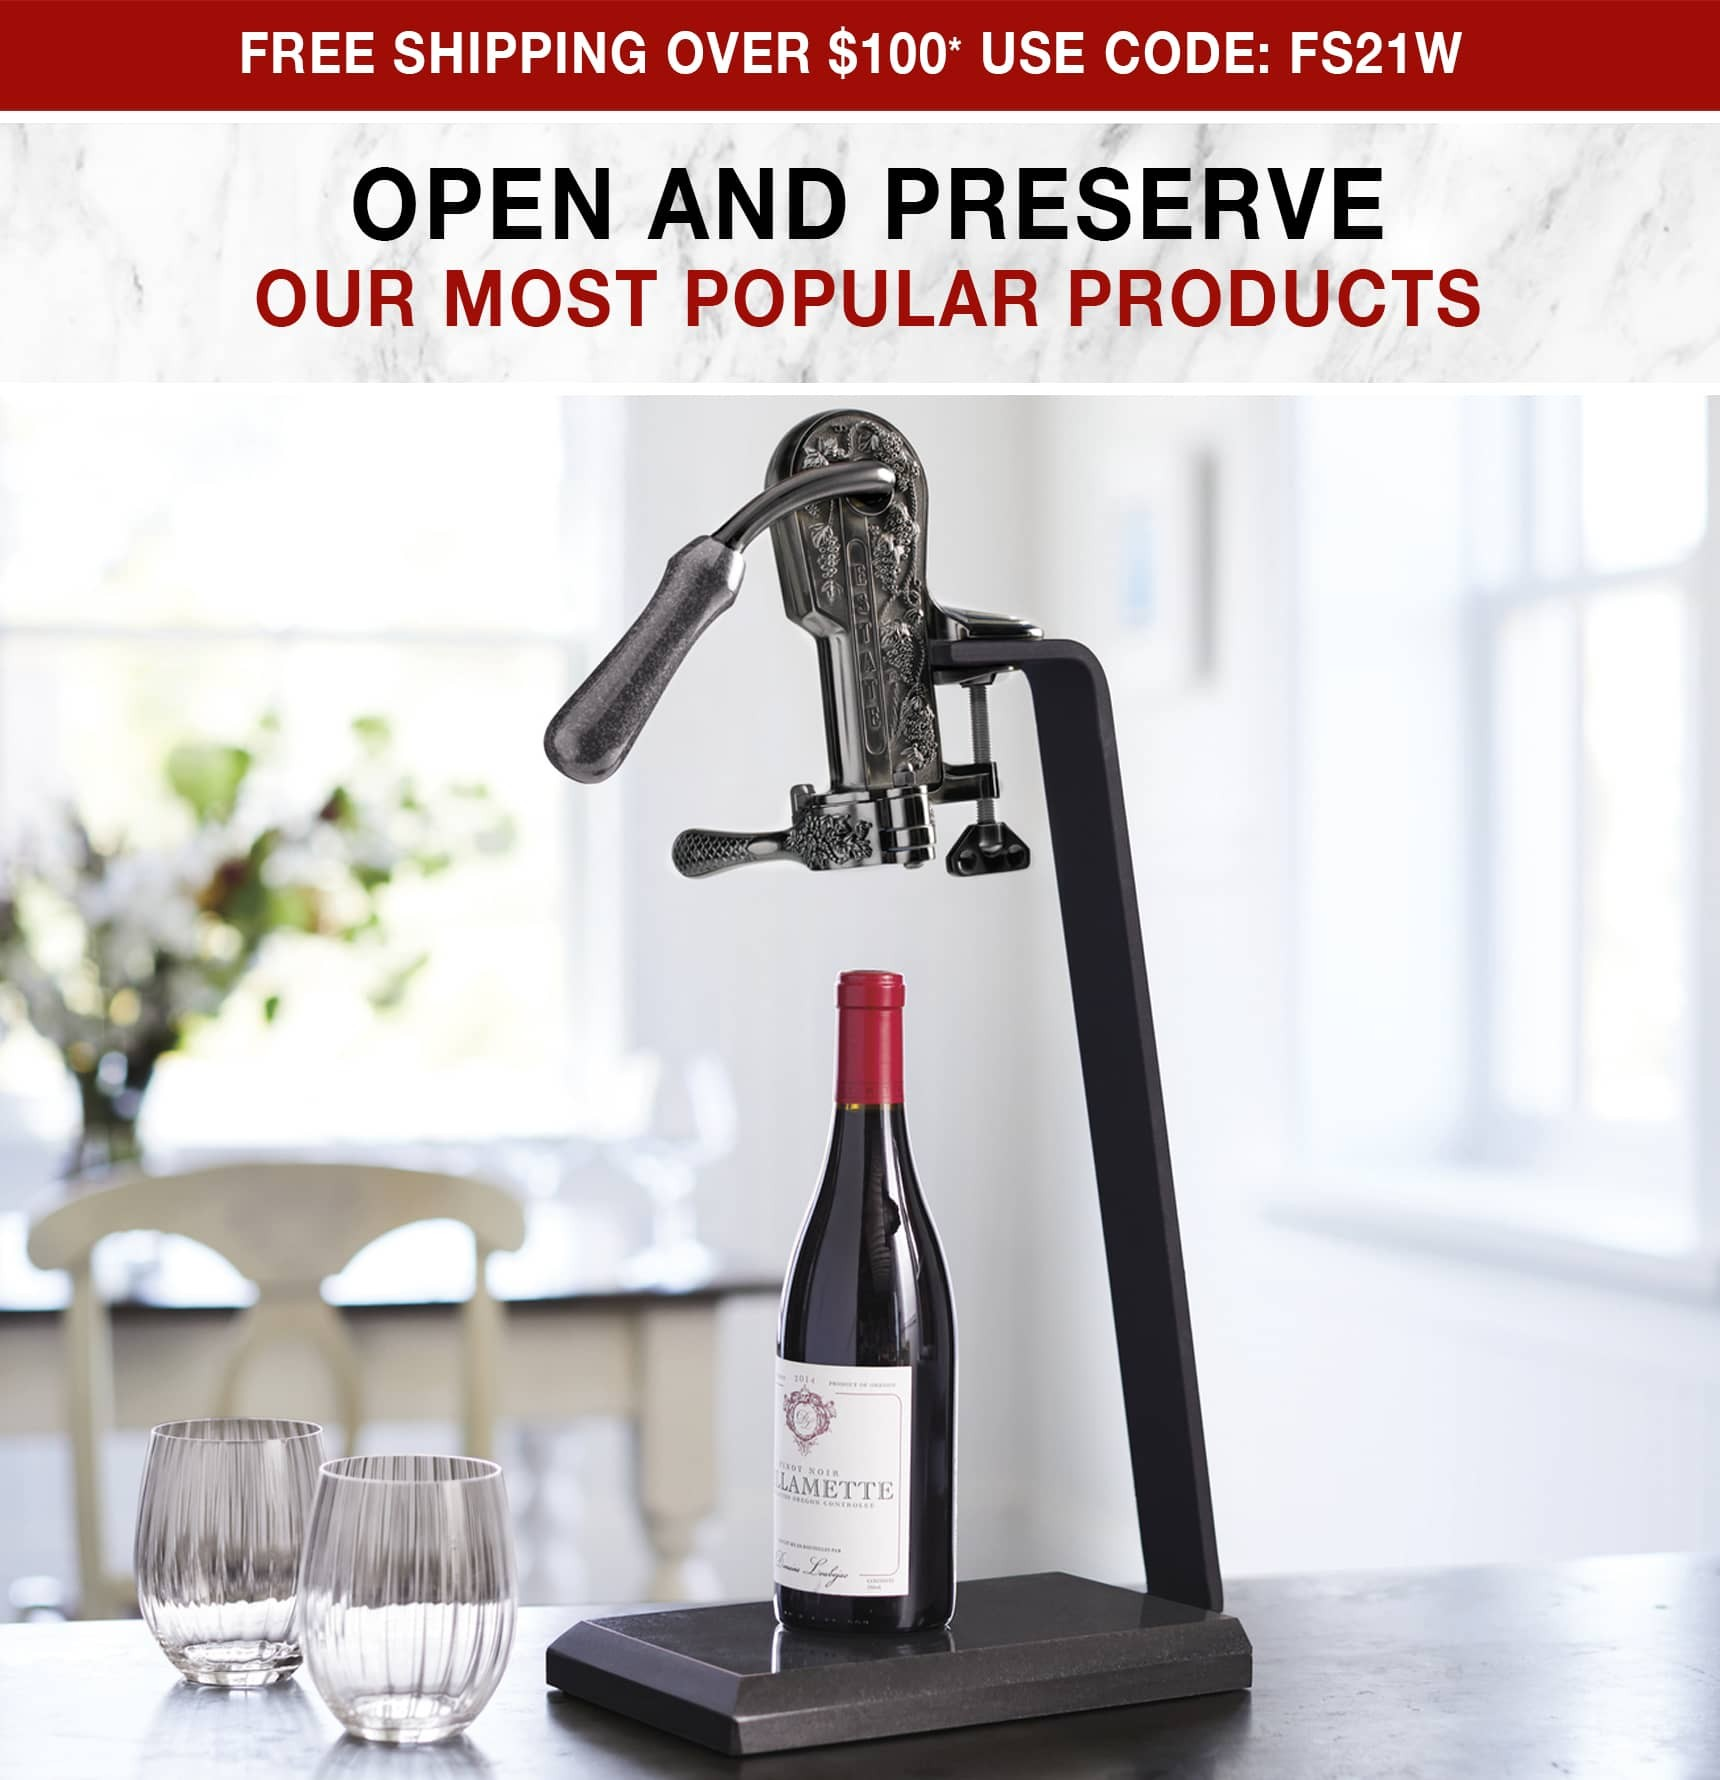 Open and Preserve Your Wine - Free Shipping Over $100 Use Code: FS21W